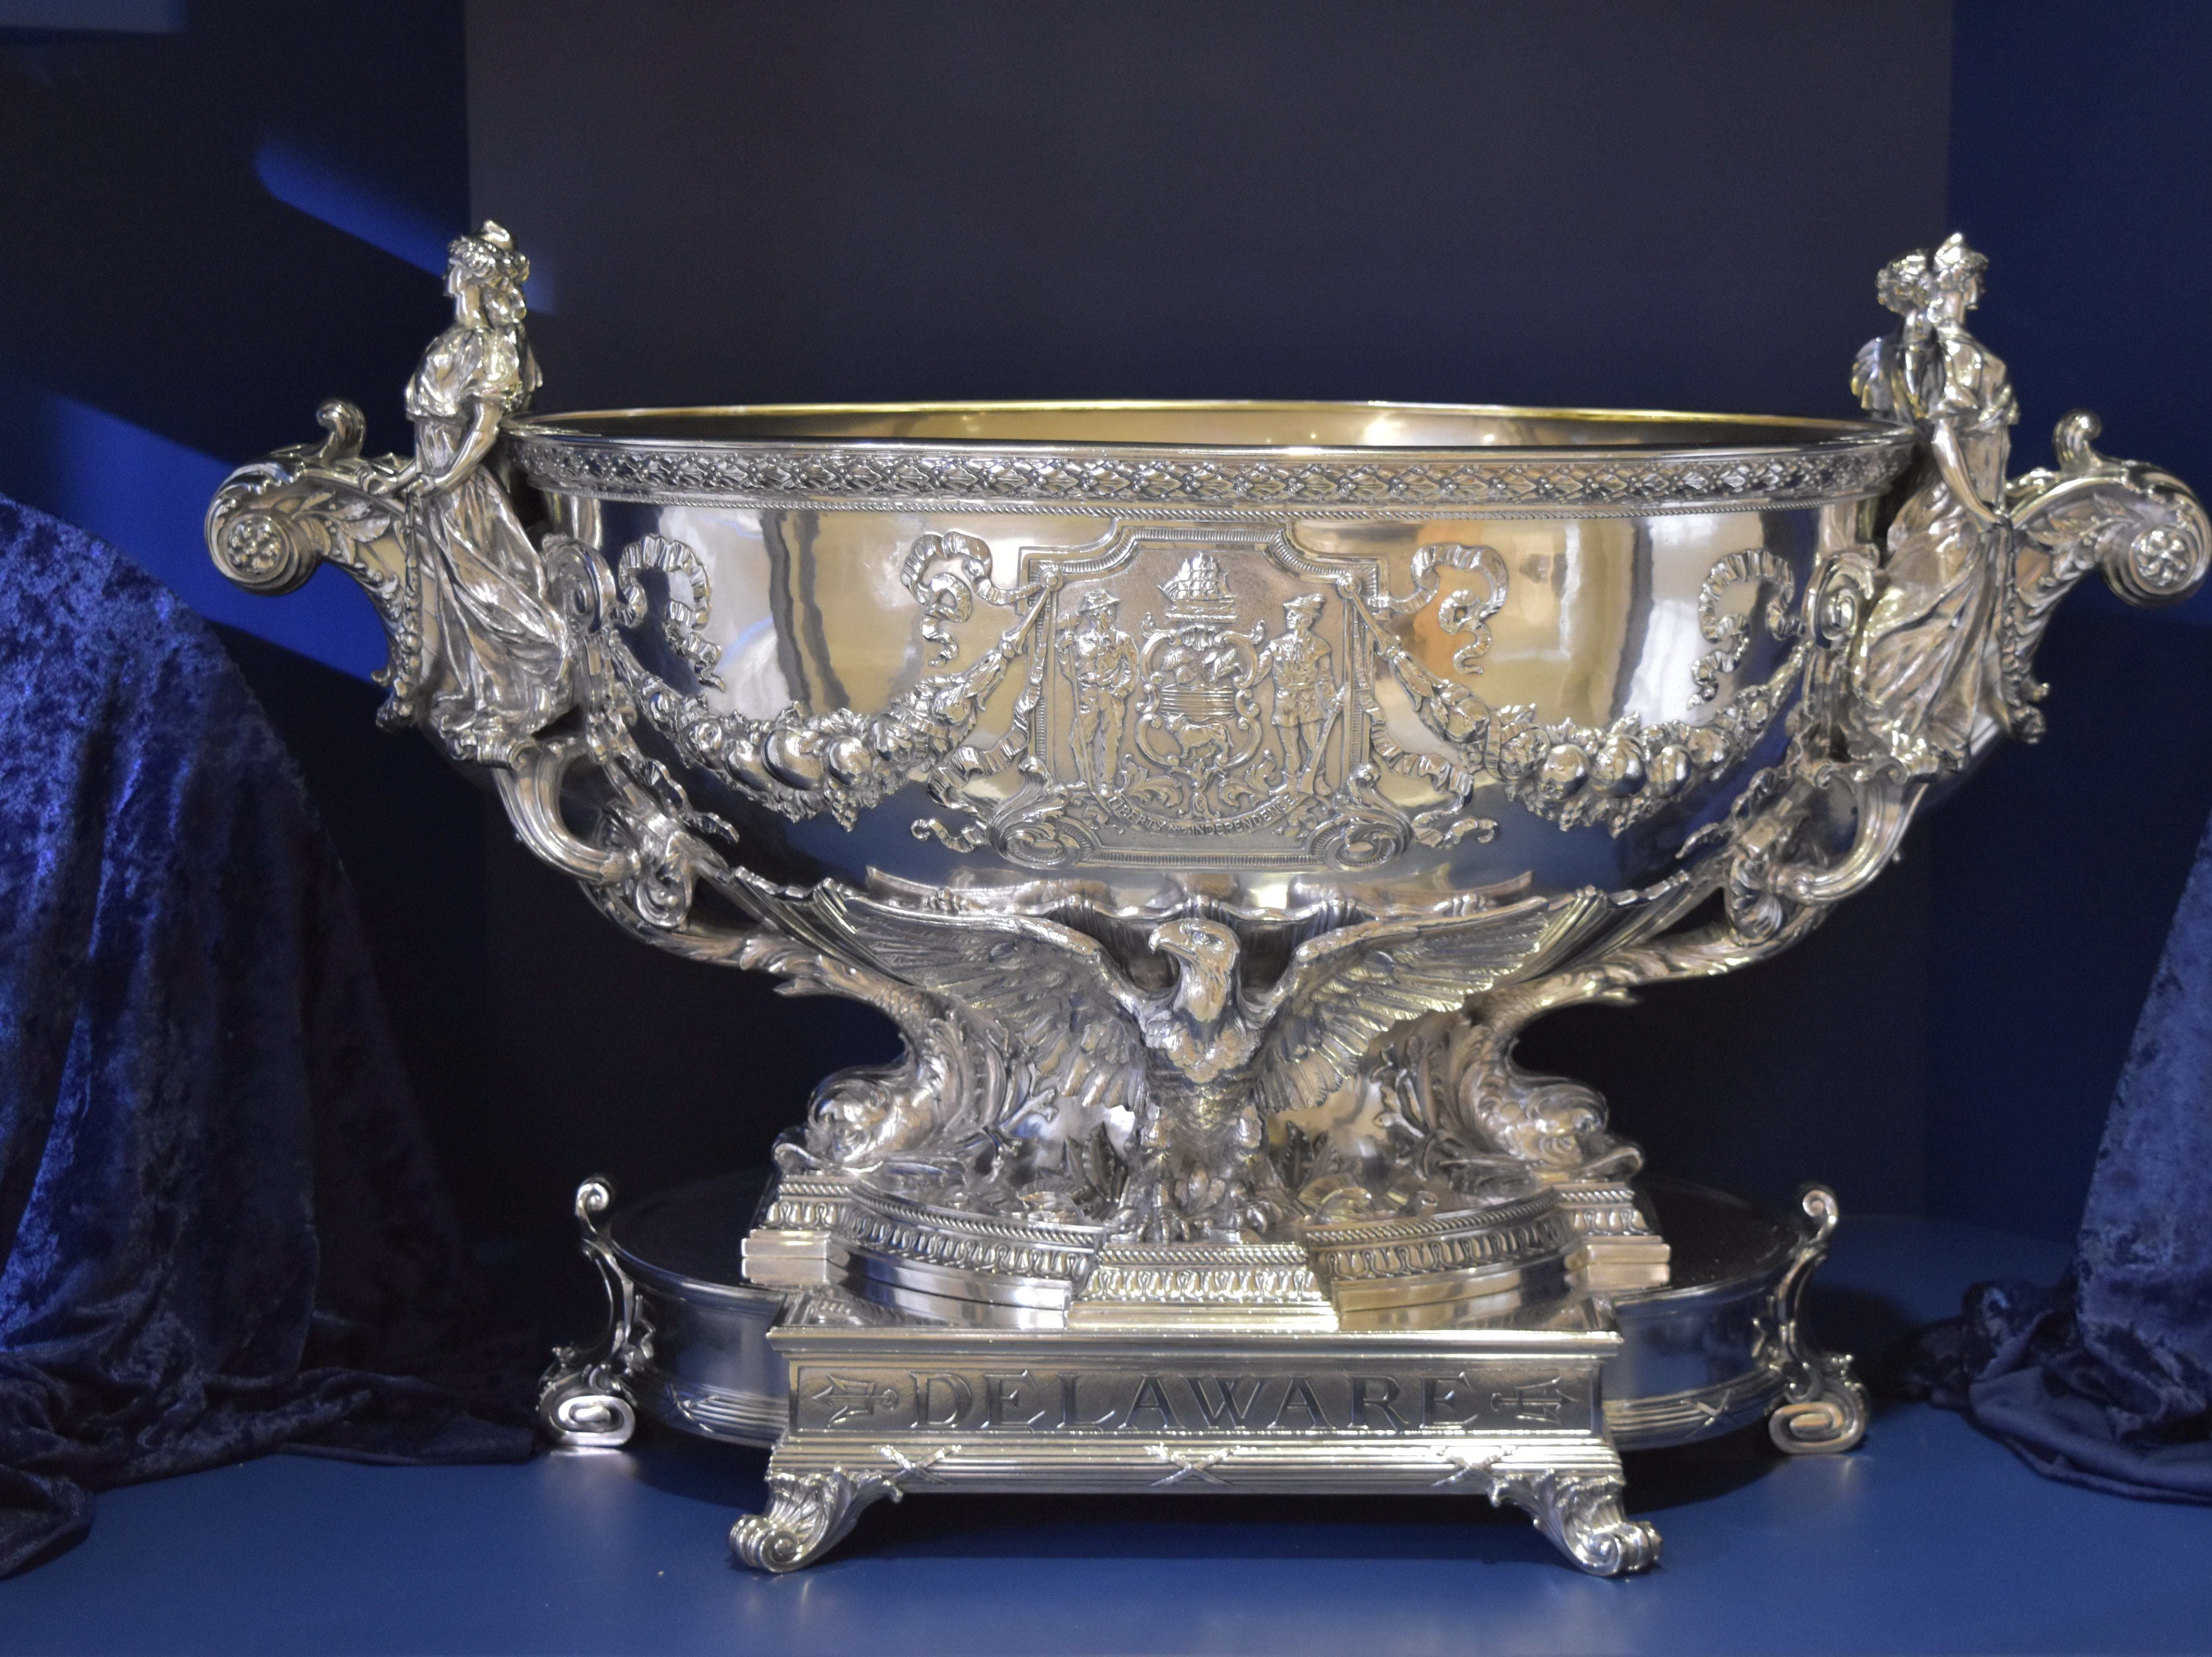 Admire the 22 pieces of Delaware silver gifted by our citizens to the U.S.S. Delaware battleship in 1910 at the Delaware Public Archives in Dover. A public subscription program raised $10,000 for the gift.  archives.delaware.gov